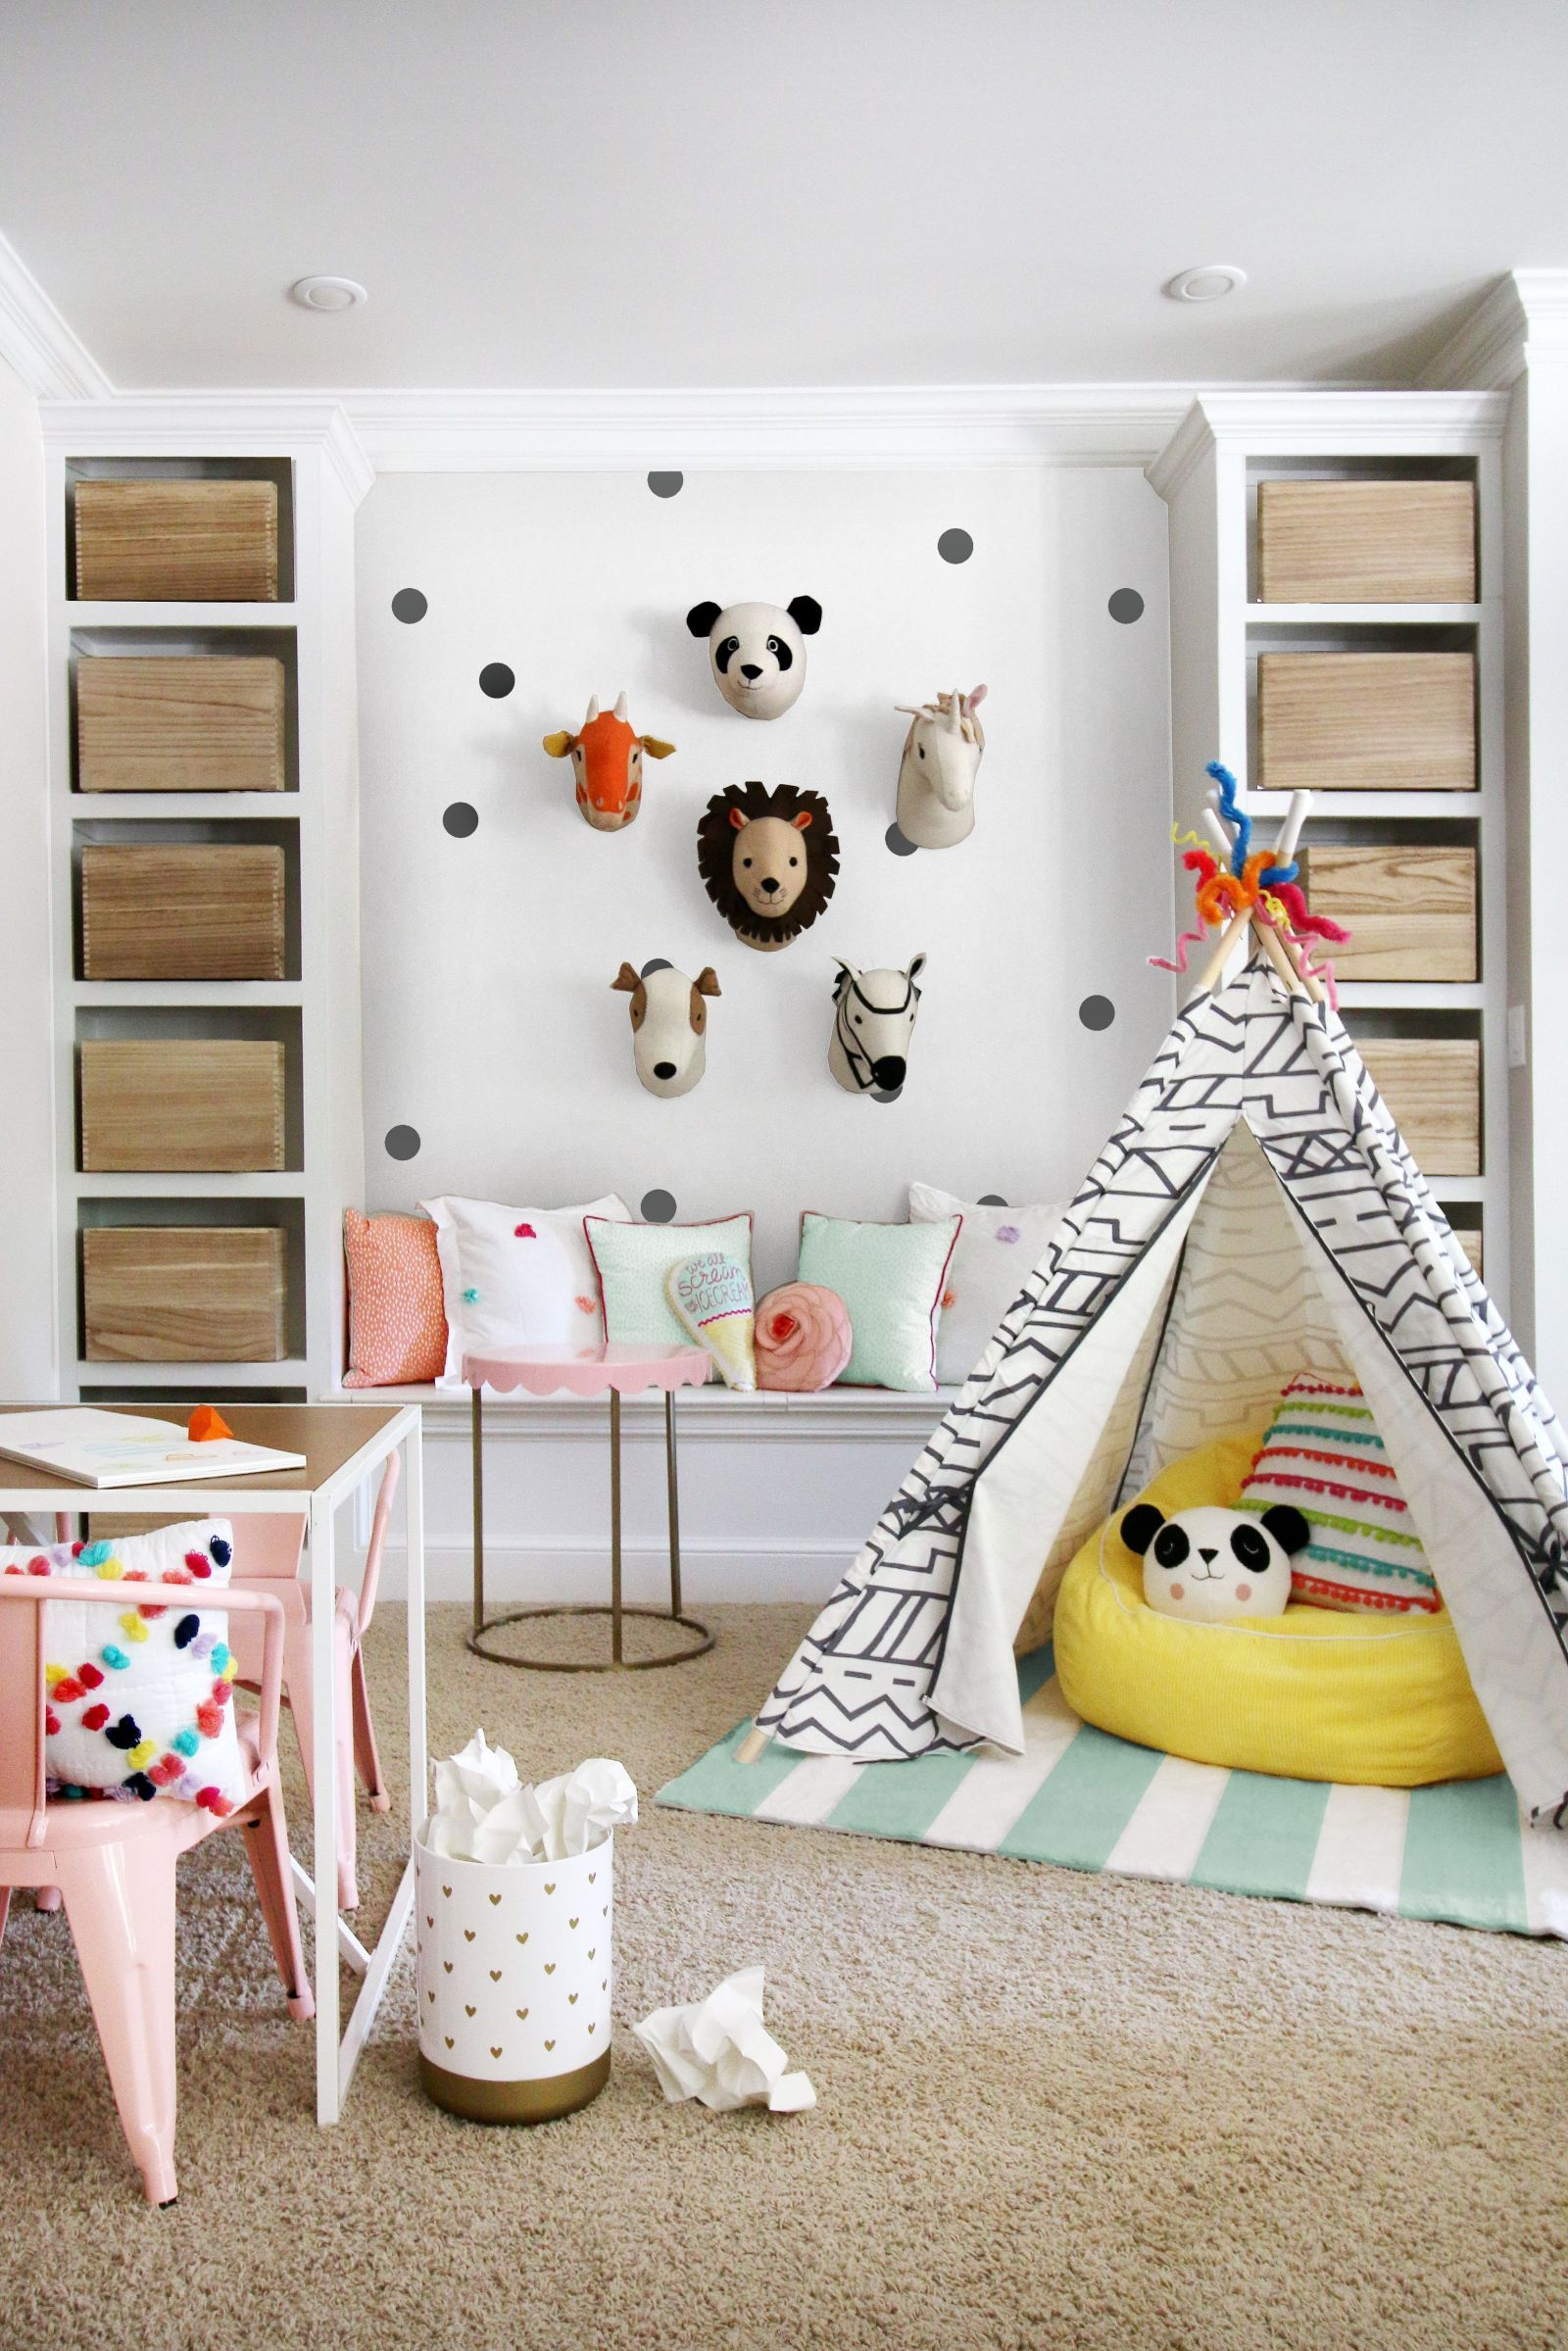 6 Totally Fresh Decorating Ideas For The Kids' Playroom | Playroom